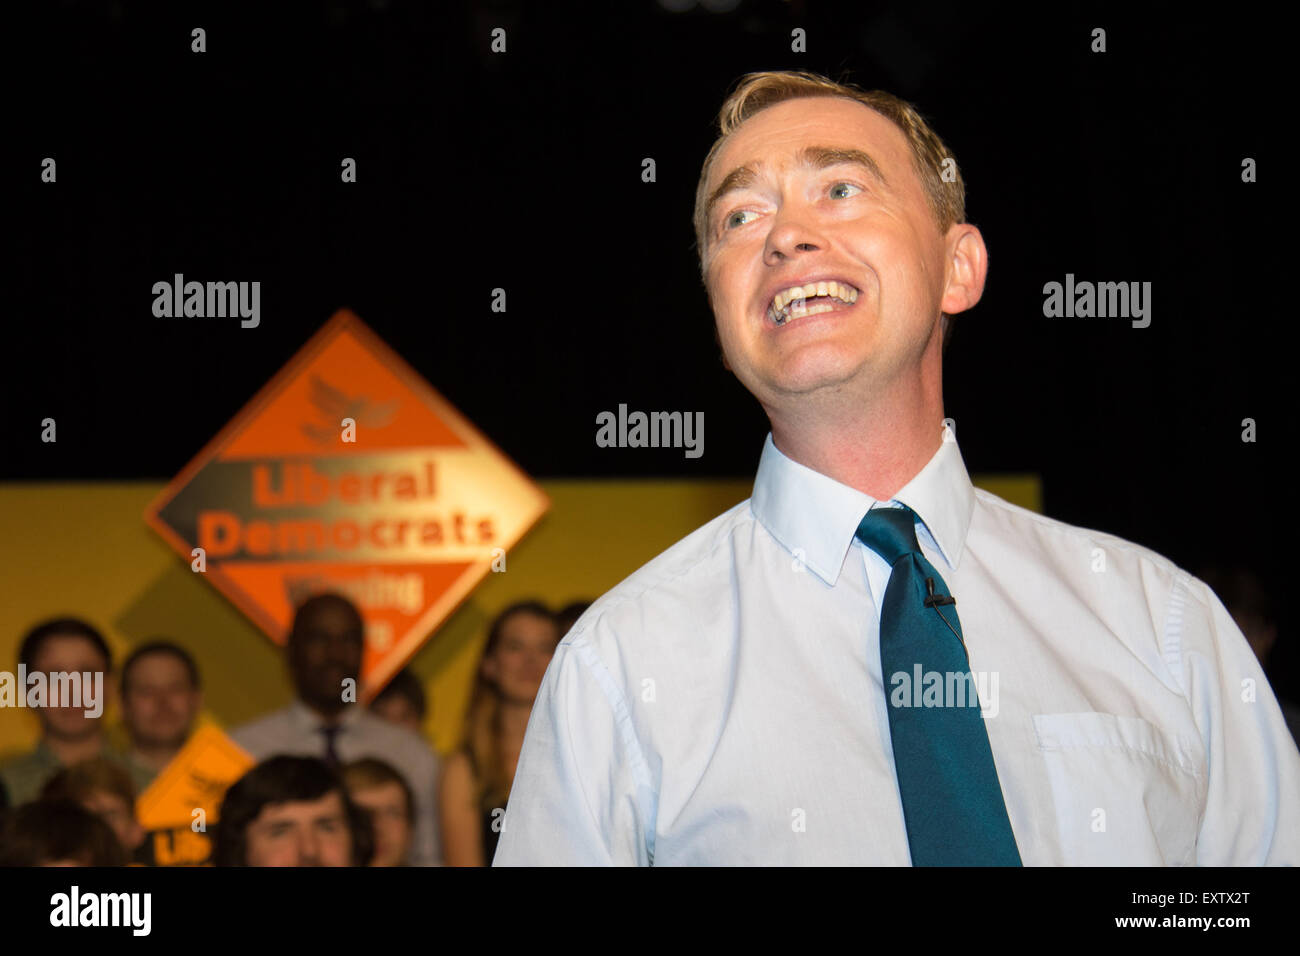 Islington Assembly Hall, London, July 16th 2015. The Liberal Democrats announce their new leader Tim Farron MP who - Stock Image